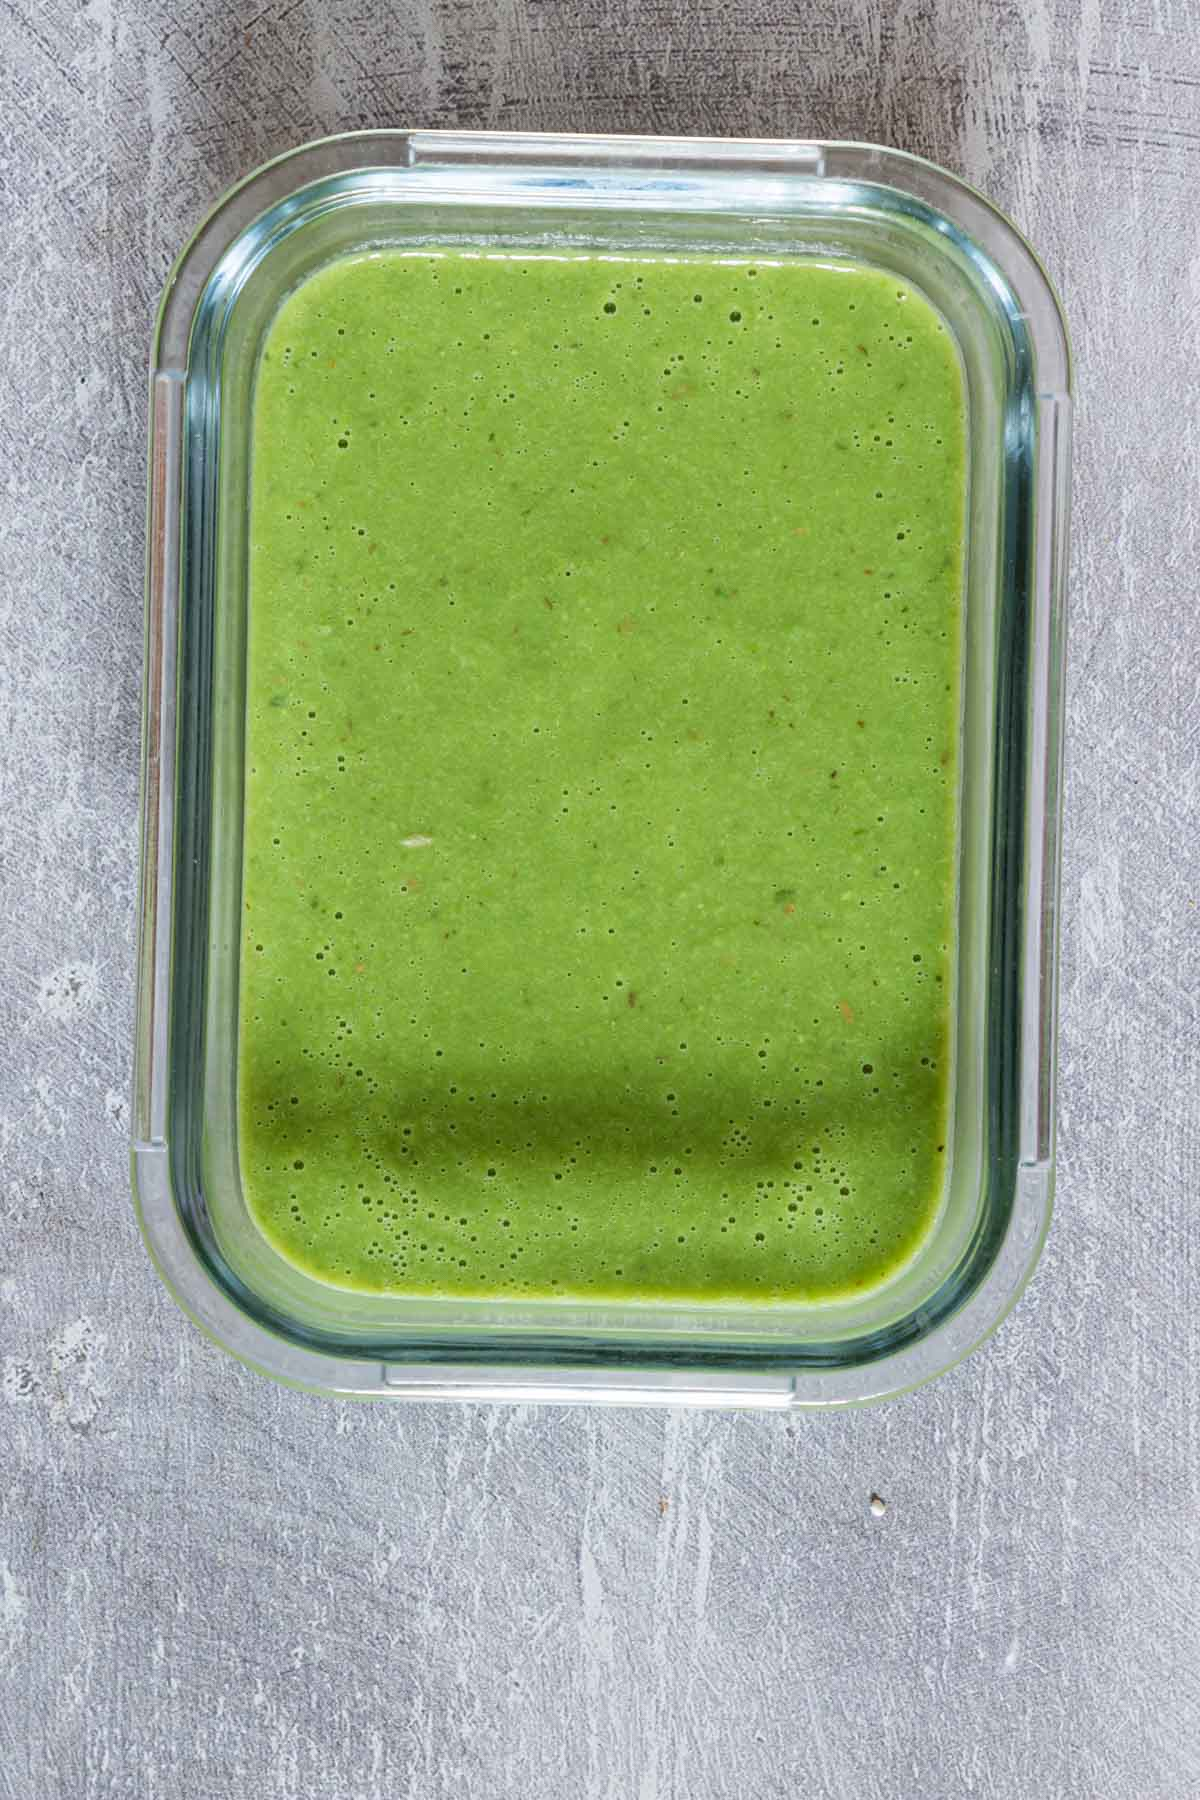 glass meal storage container filled with pea soup